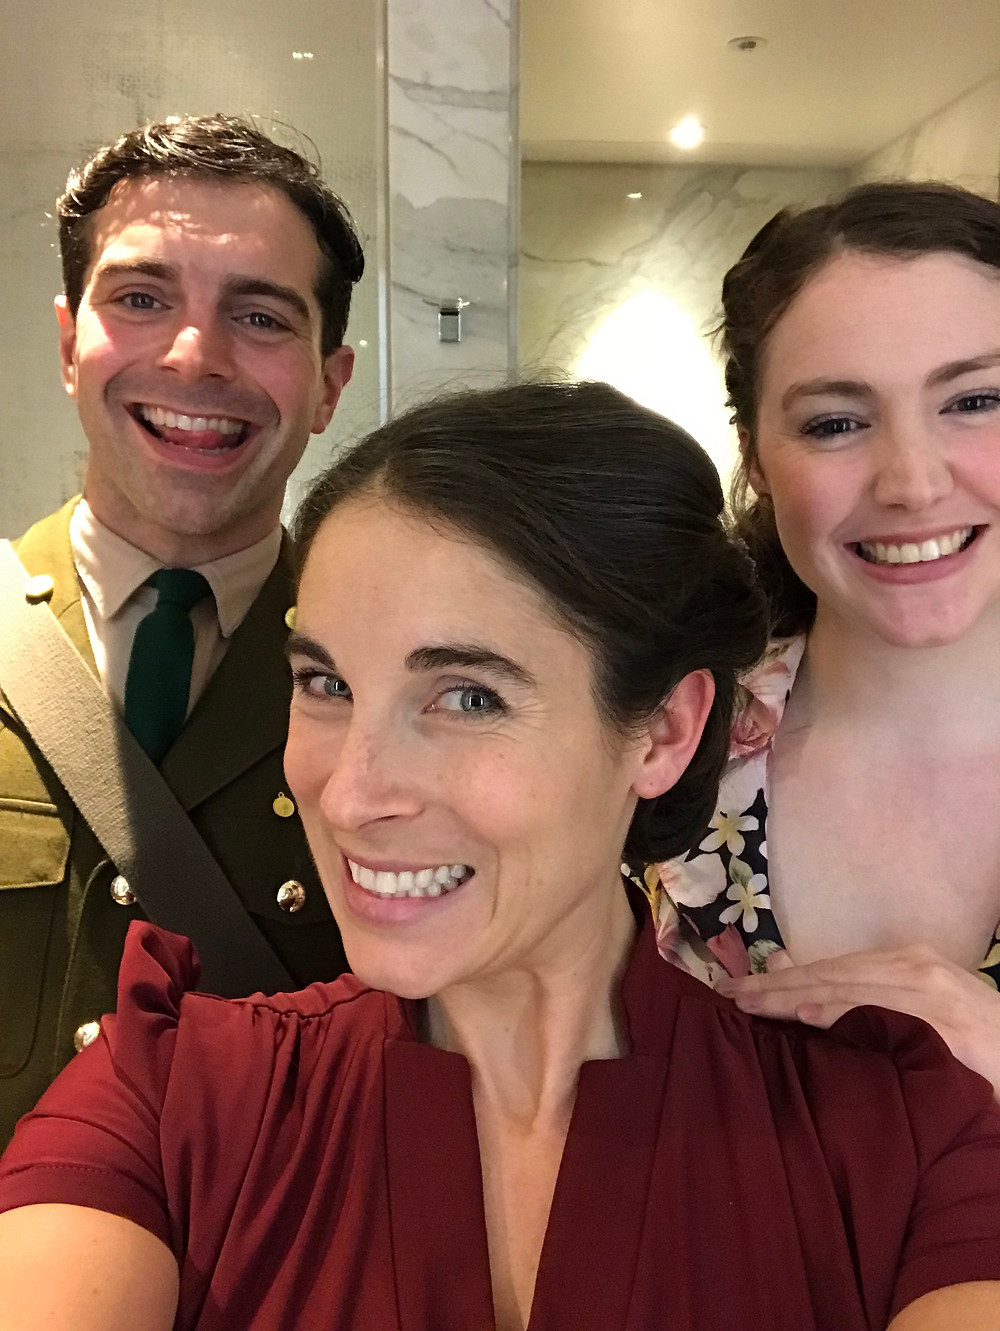 actors people smiling 1940s clothes